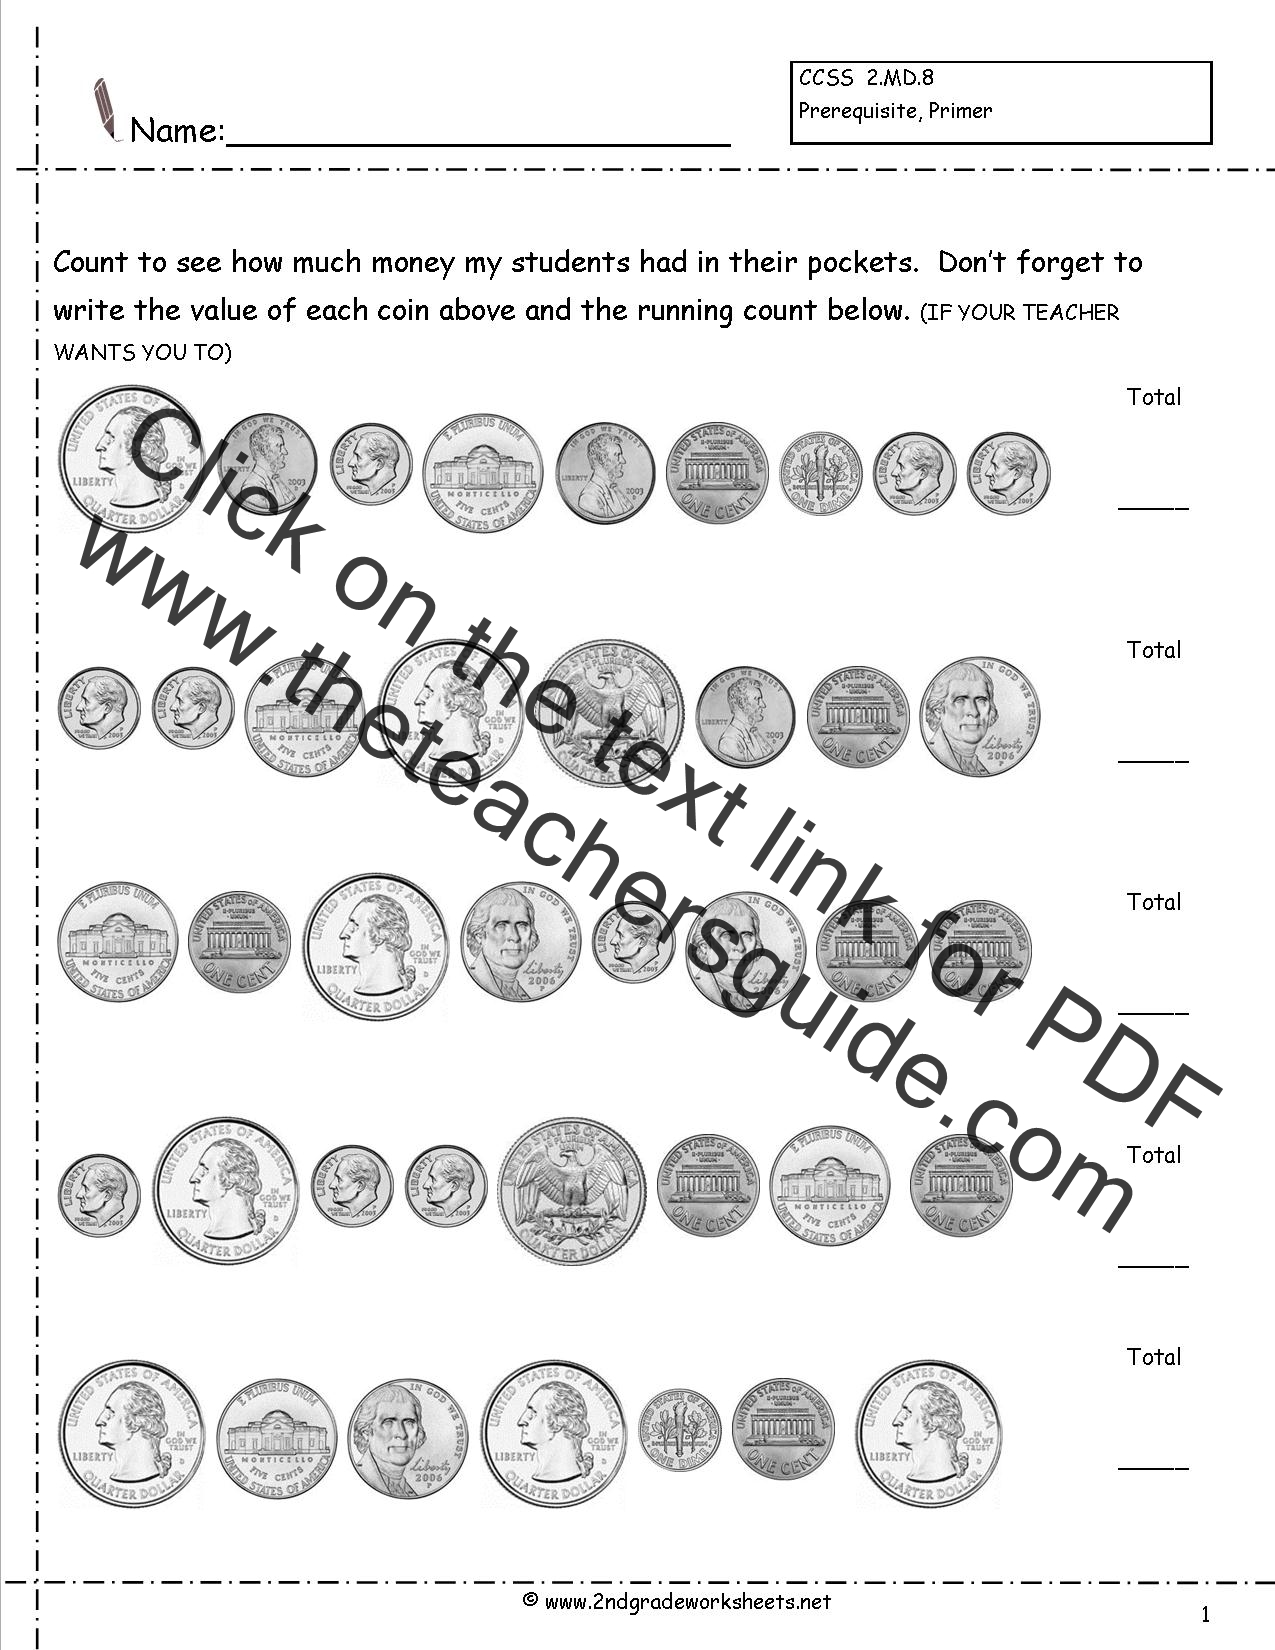 Worksheets Coin Value Worksheet counting coins and money worksheets printouts worksheets